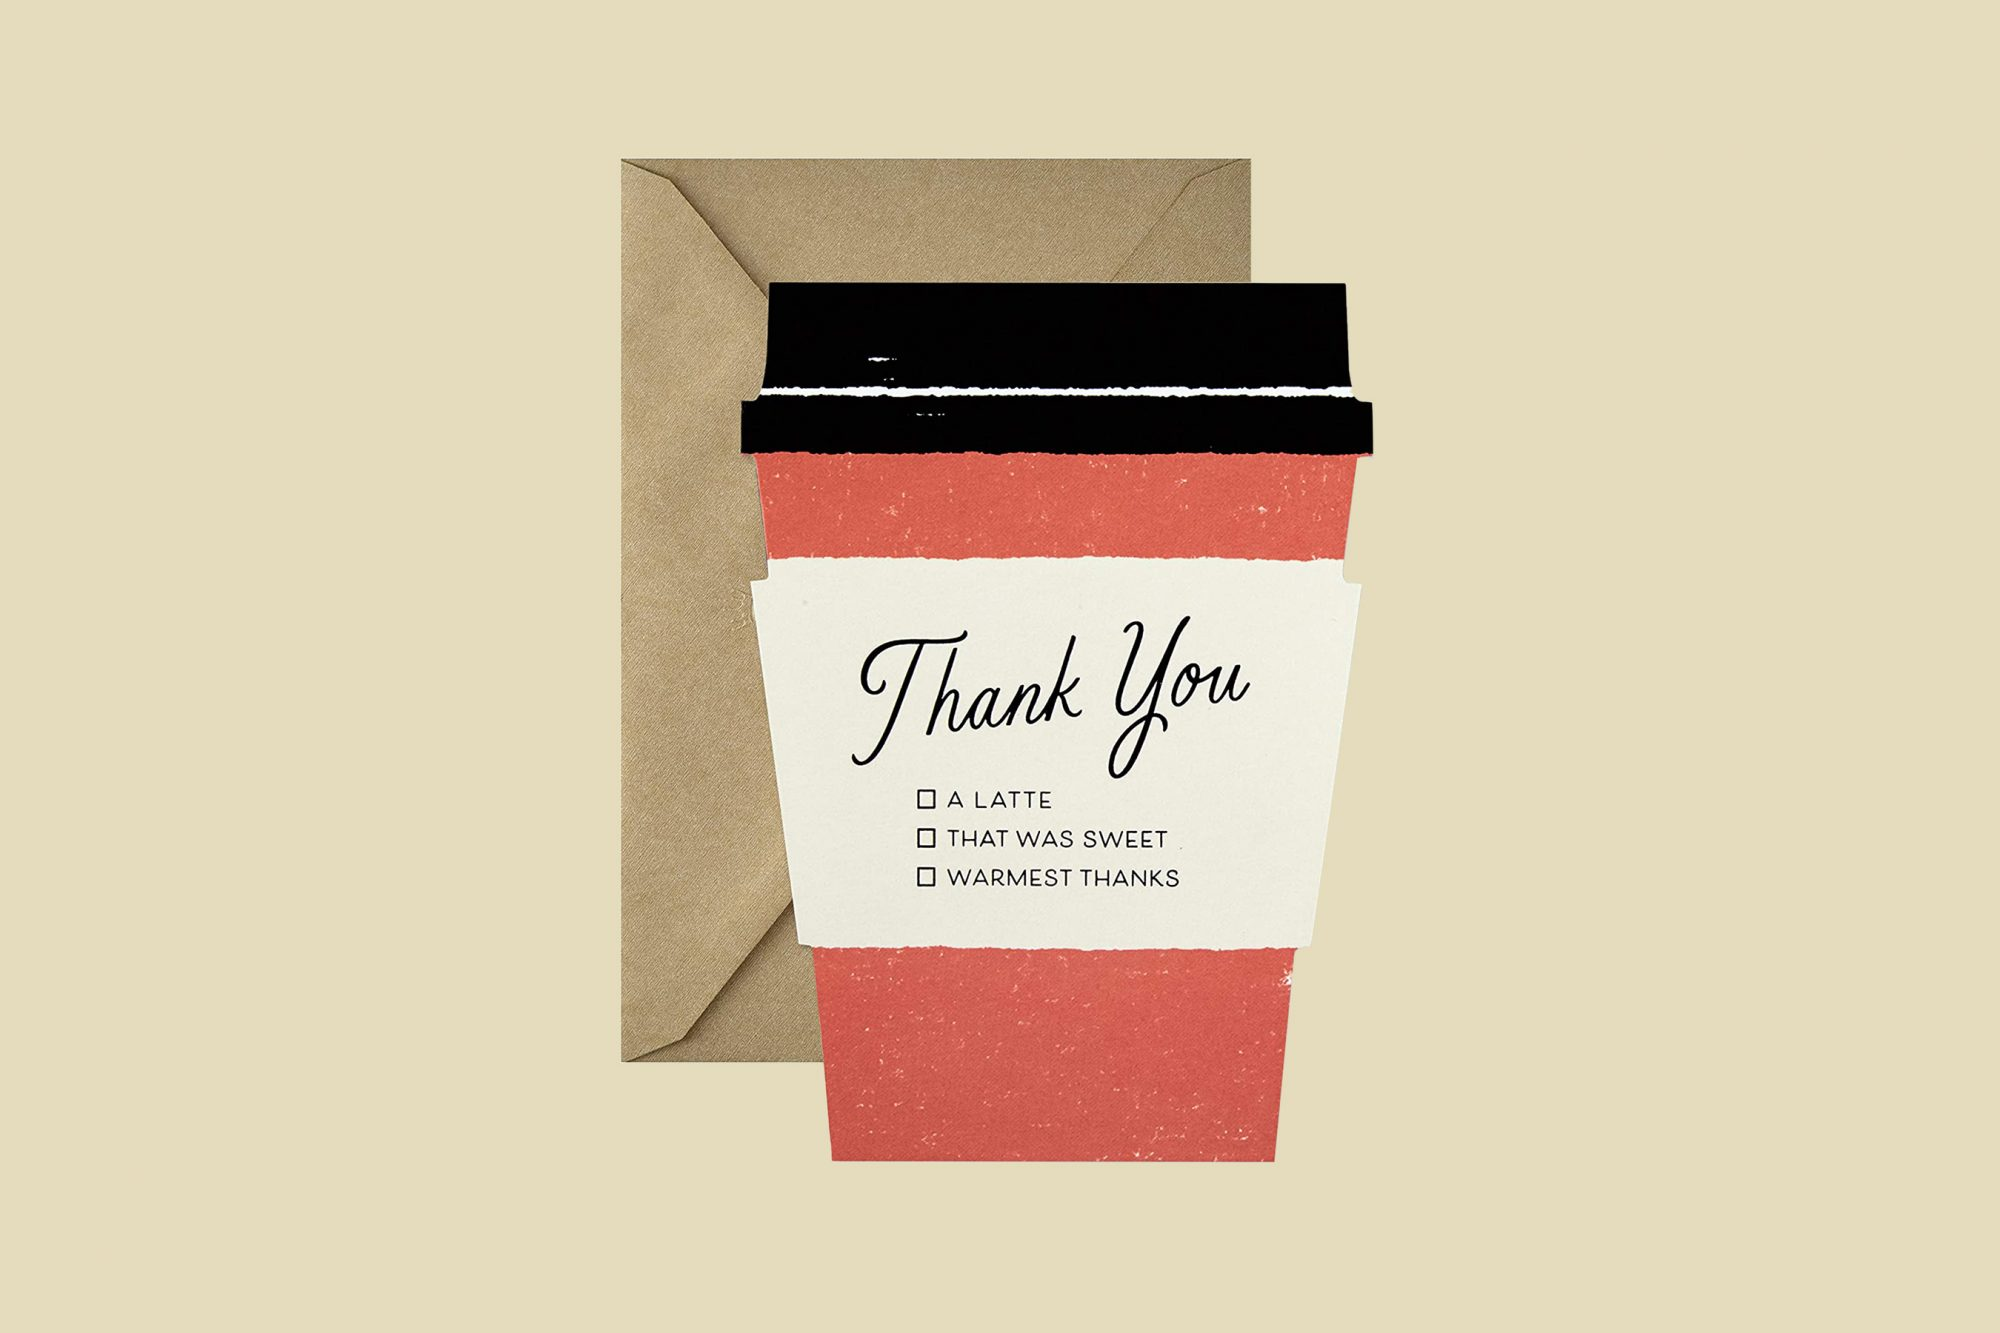 coffee cup shaped thank you card